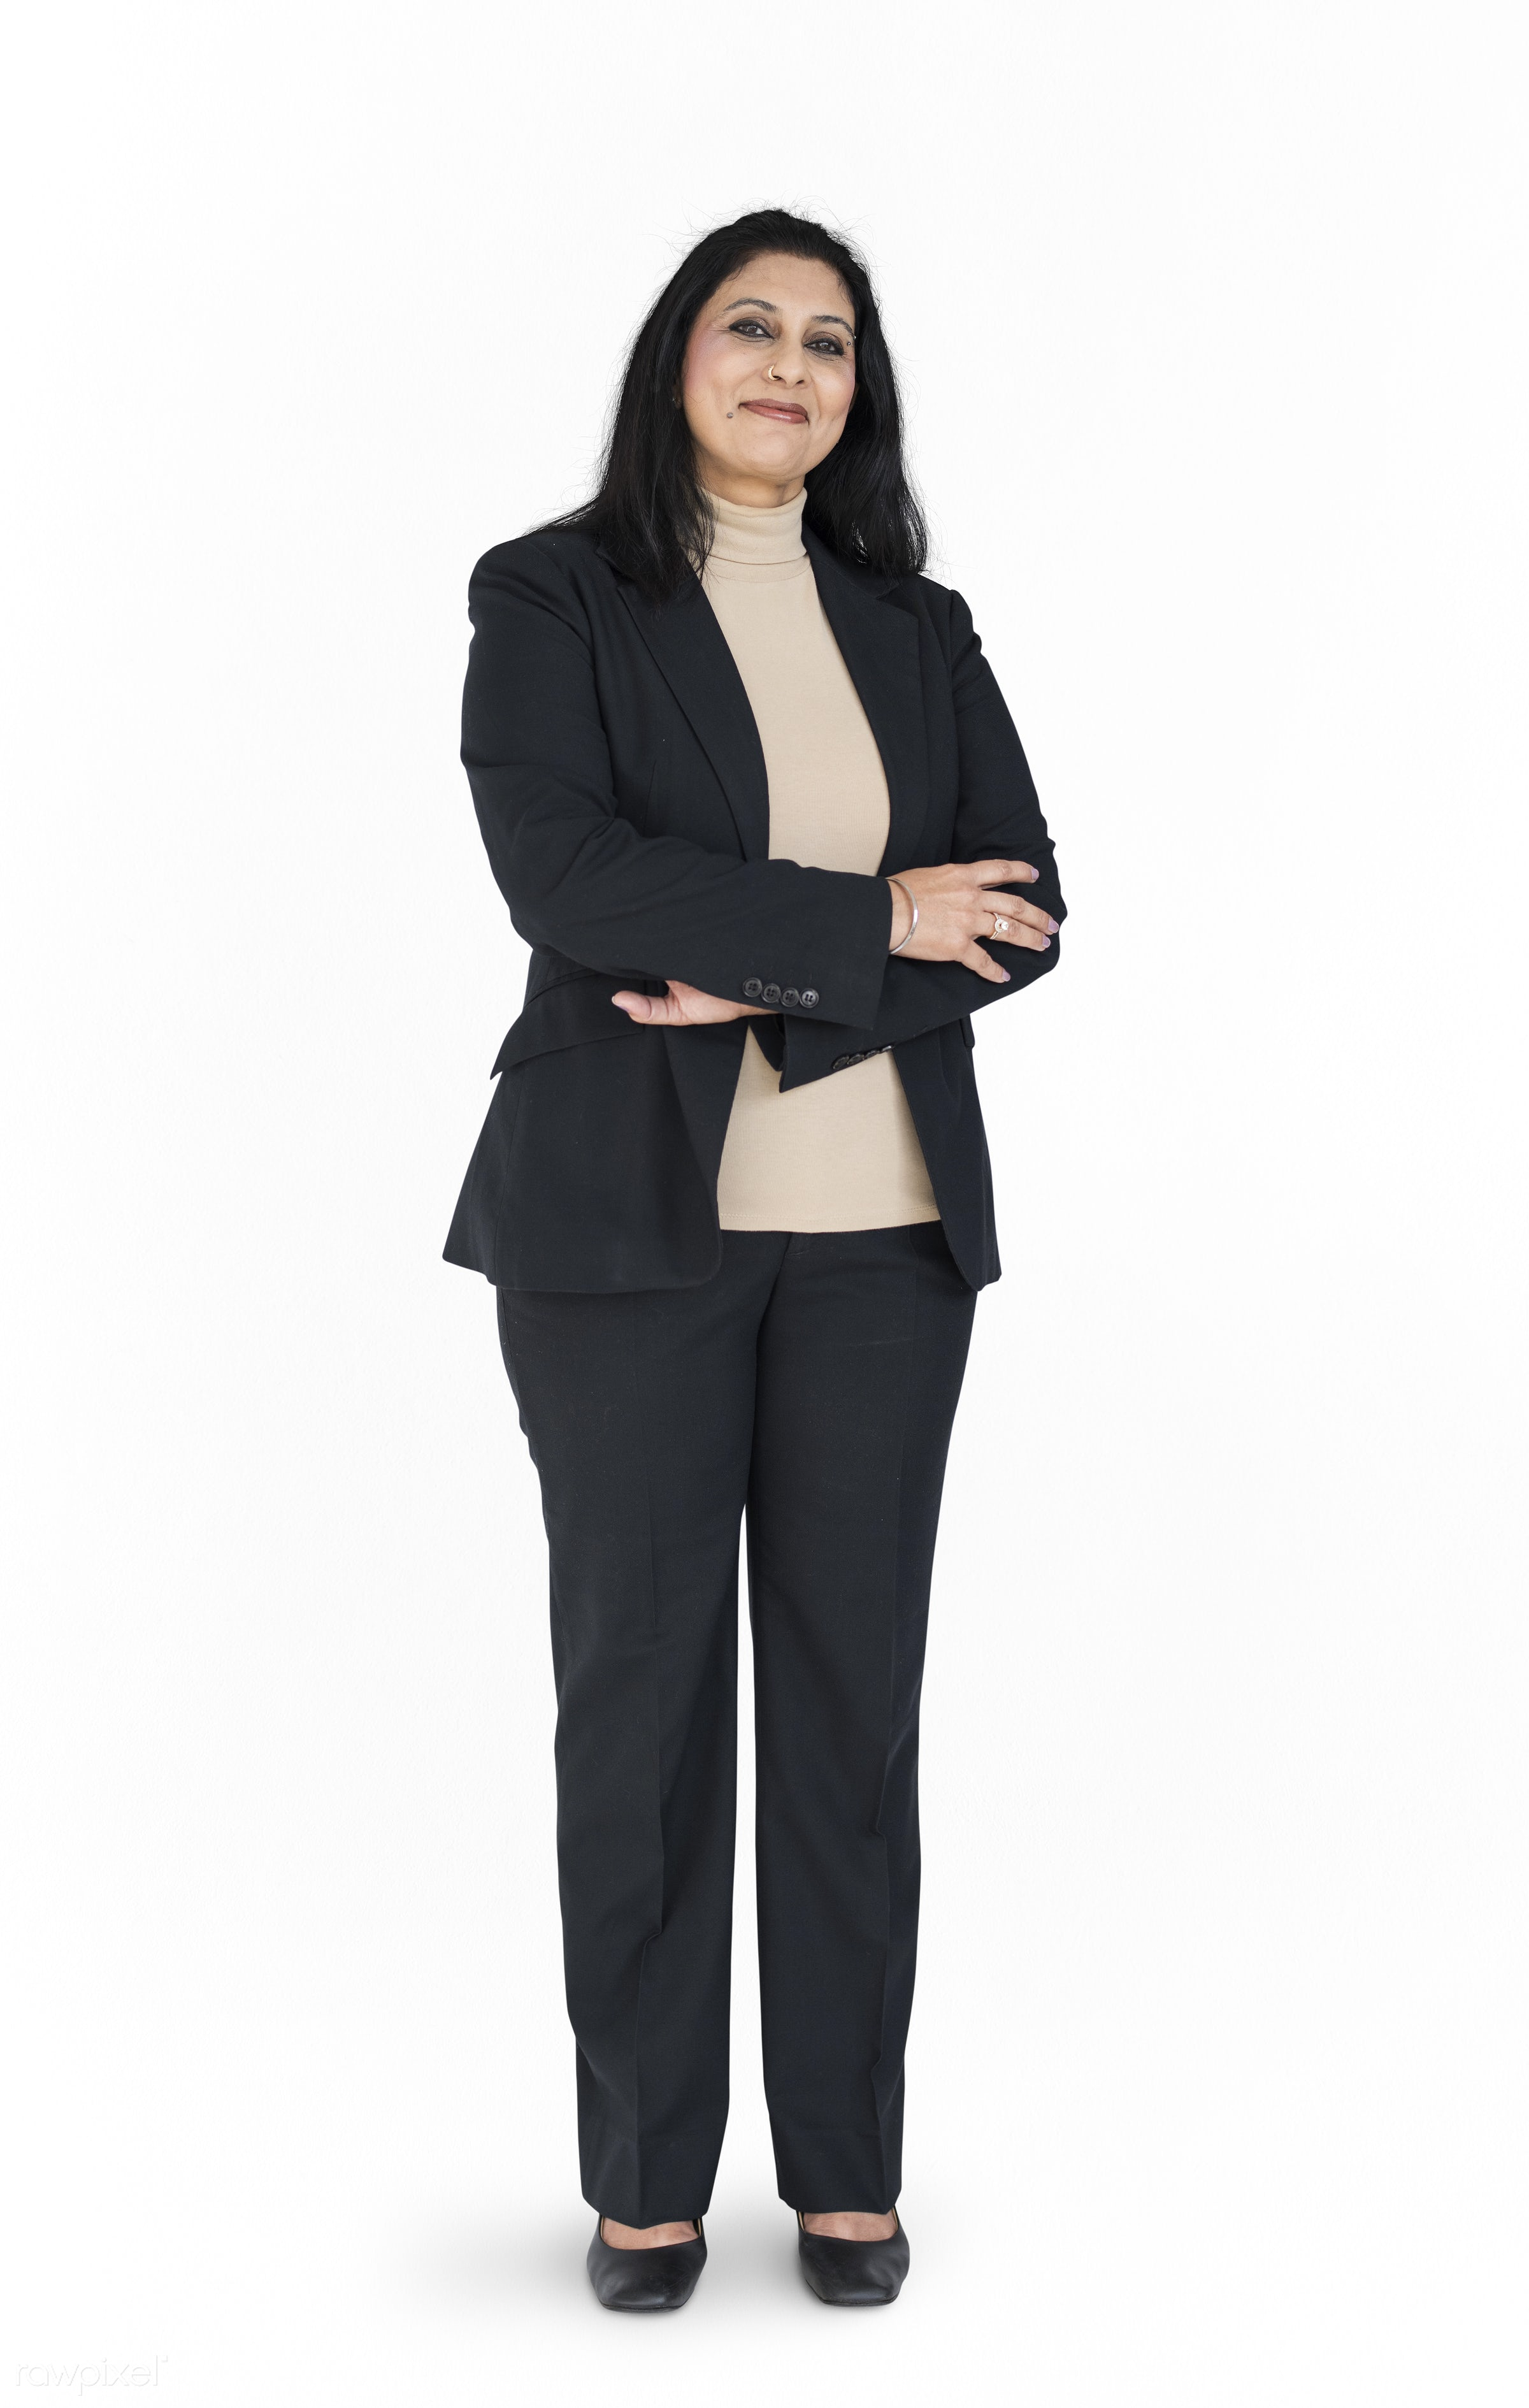 expression, studio, working woman, model, person, full length, white collar worker, isolated on white, race, people,...